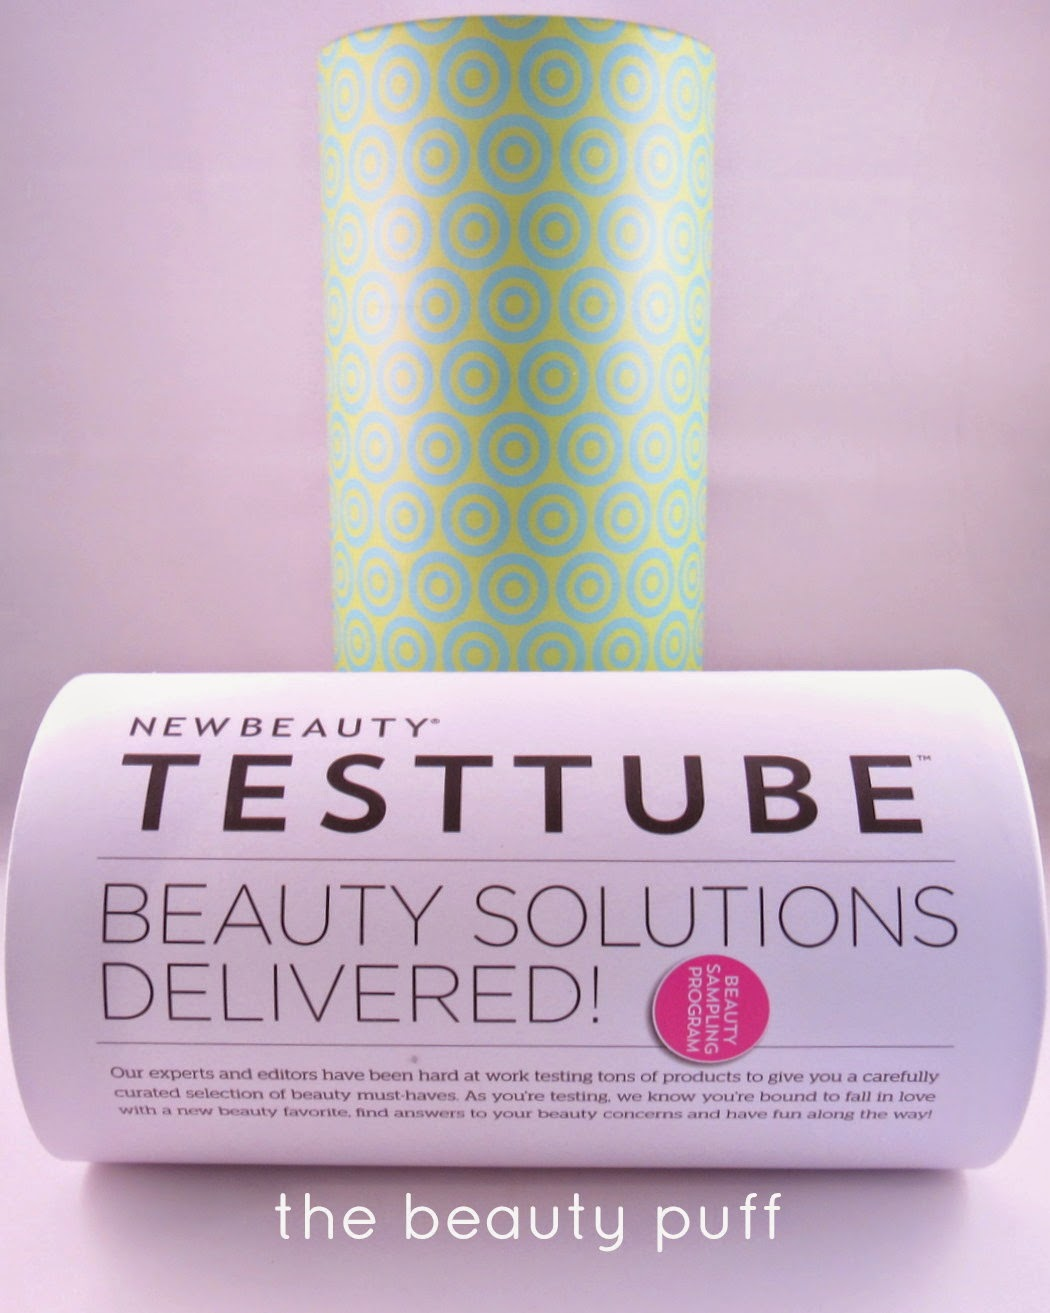 newbeauty testtube - the beauty puff